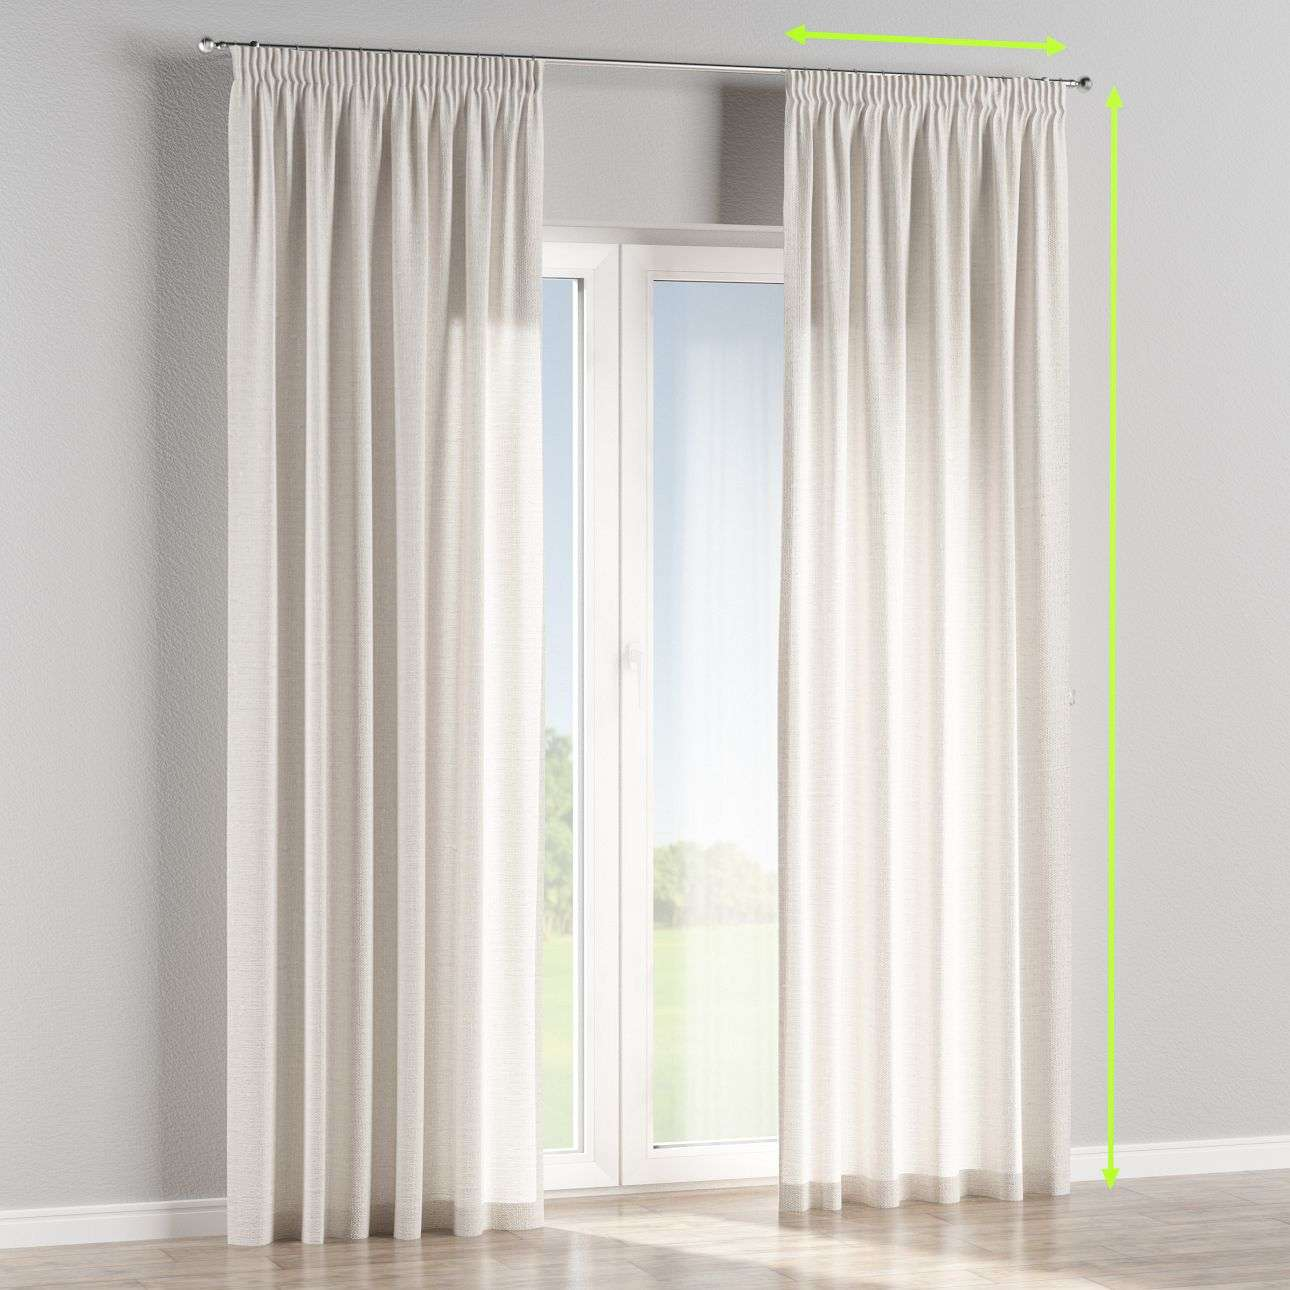 Pencil pleat lined curtains in collection Linen, fabric: 392-04